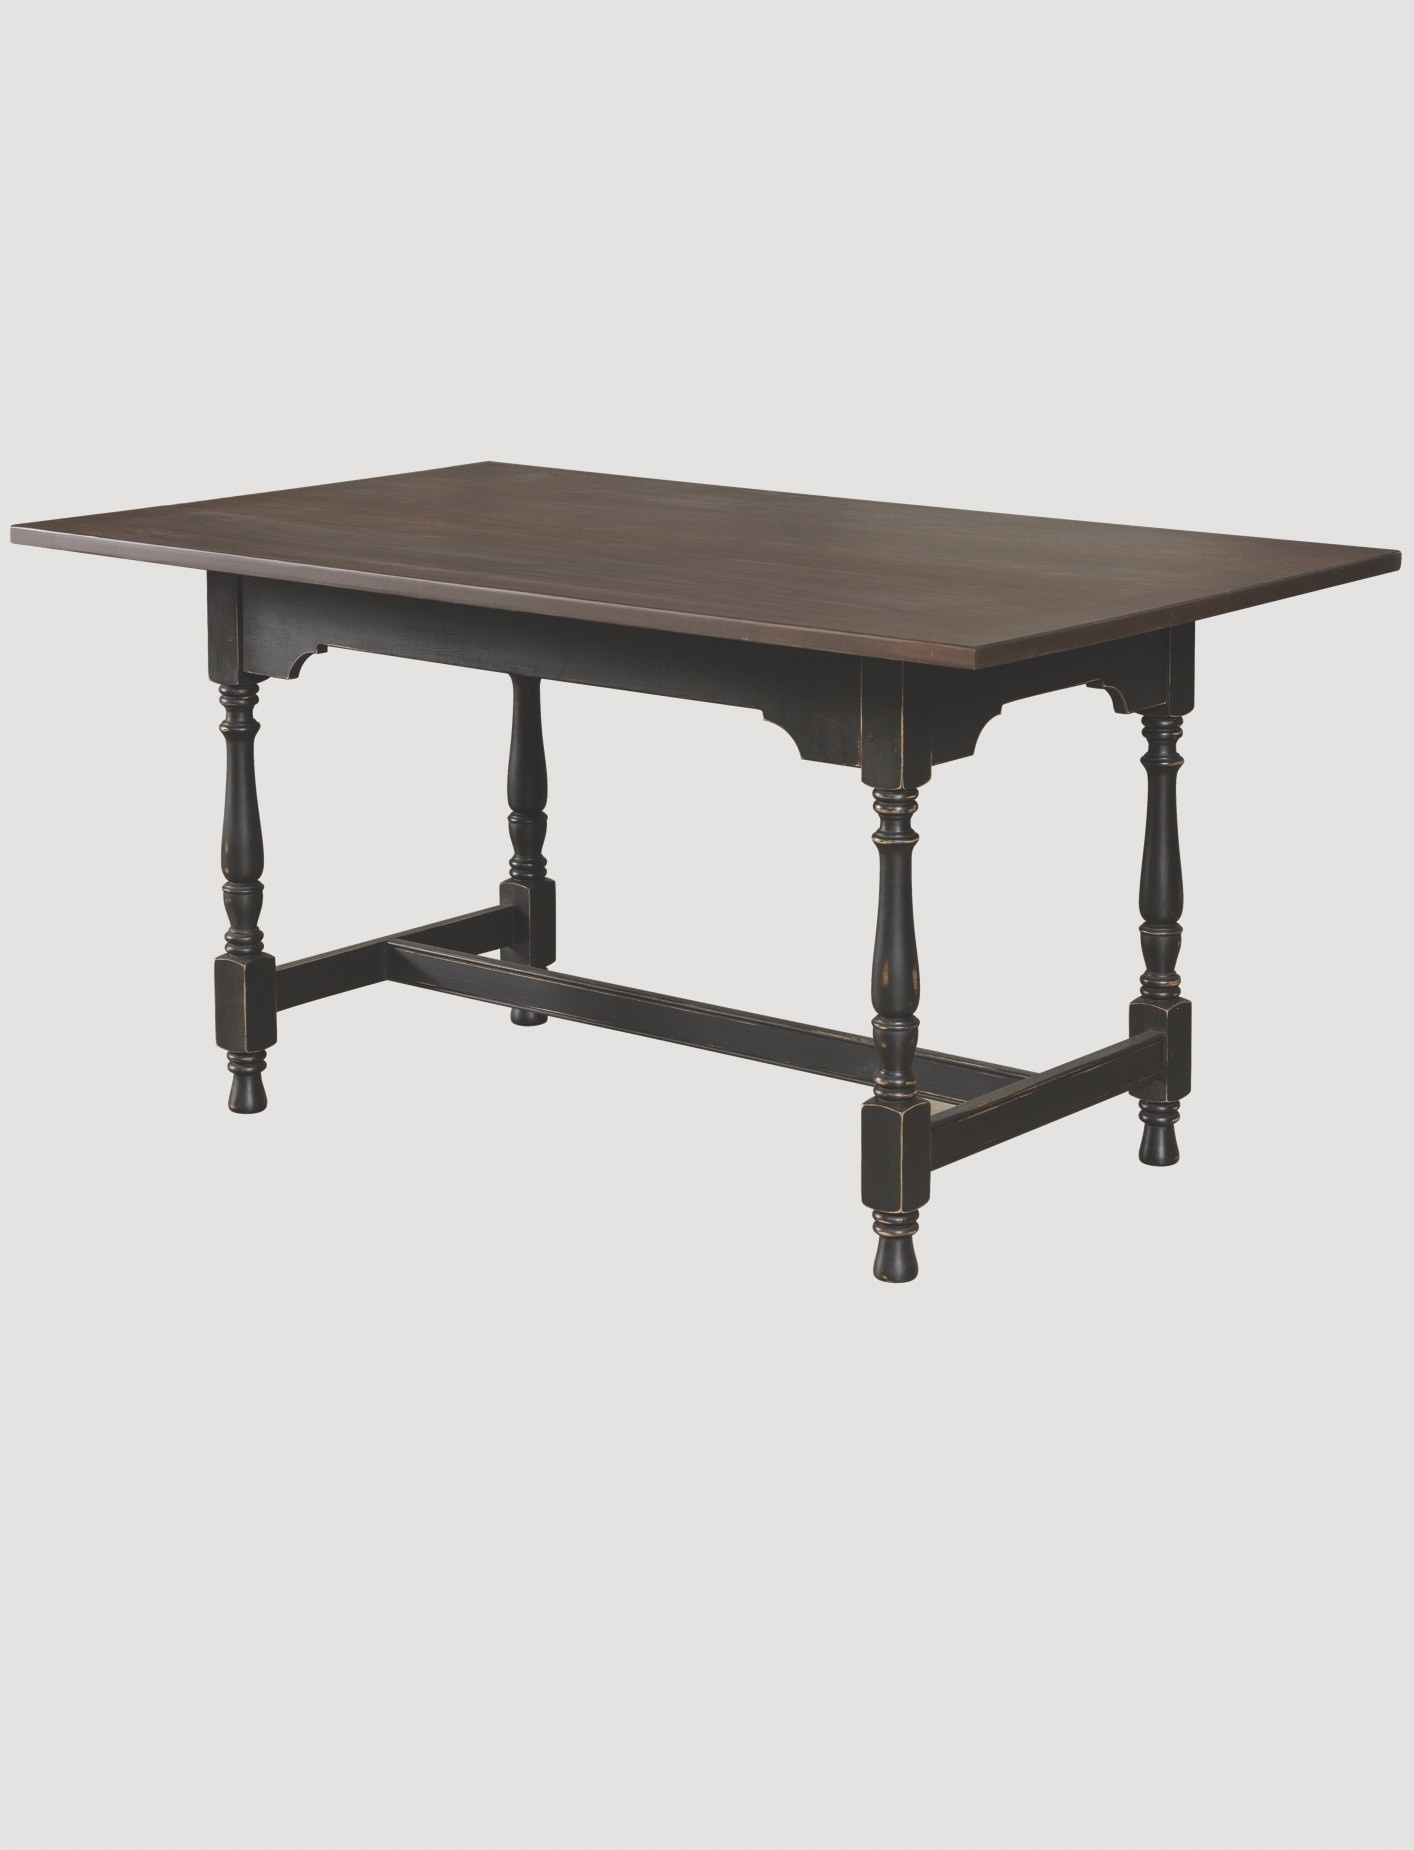 Nana's Farmhouse William & Mary Table Pine Top with Black Rubbed Legs